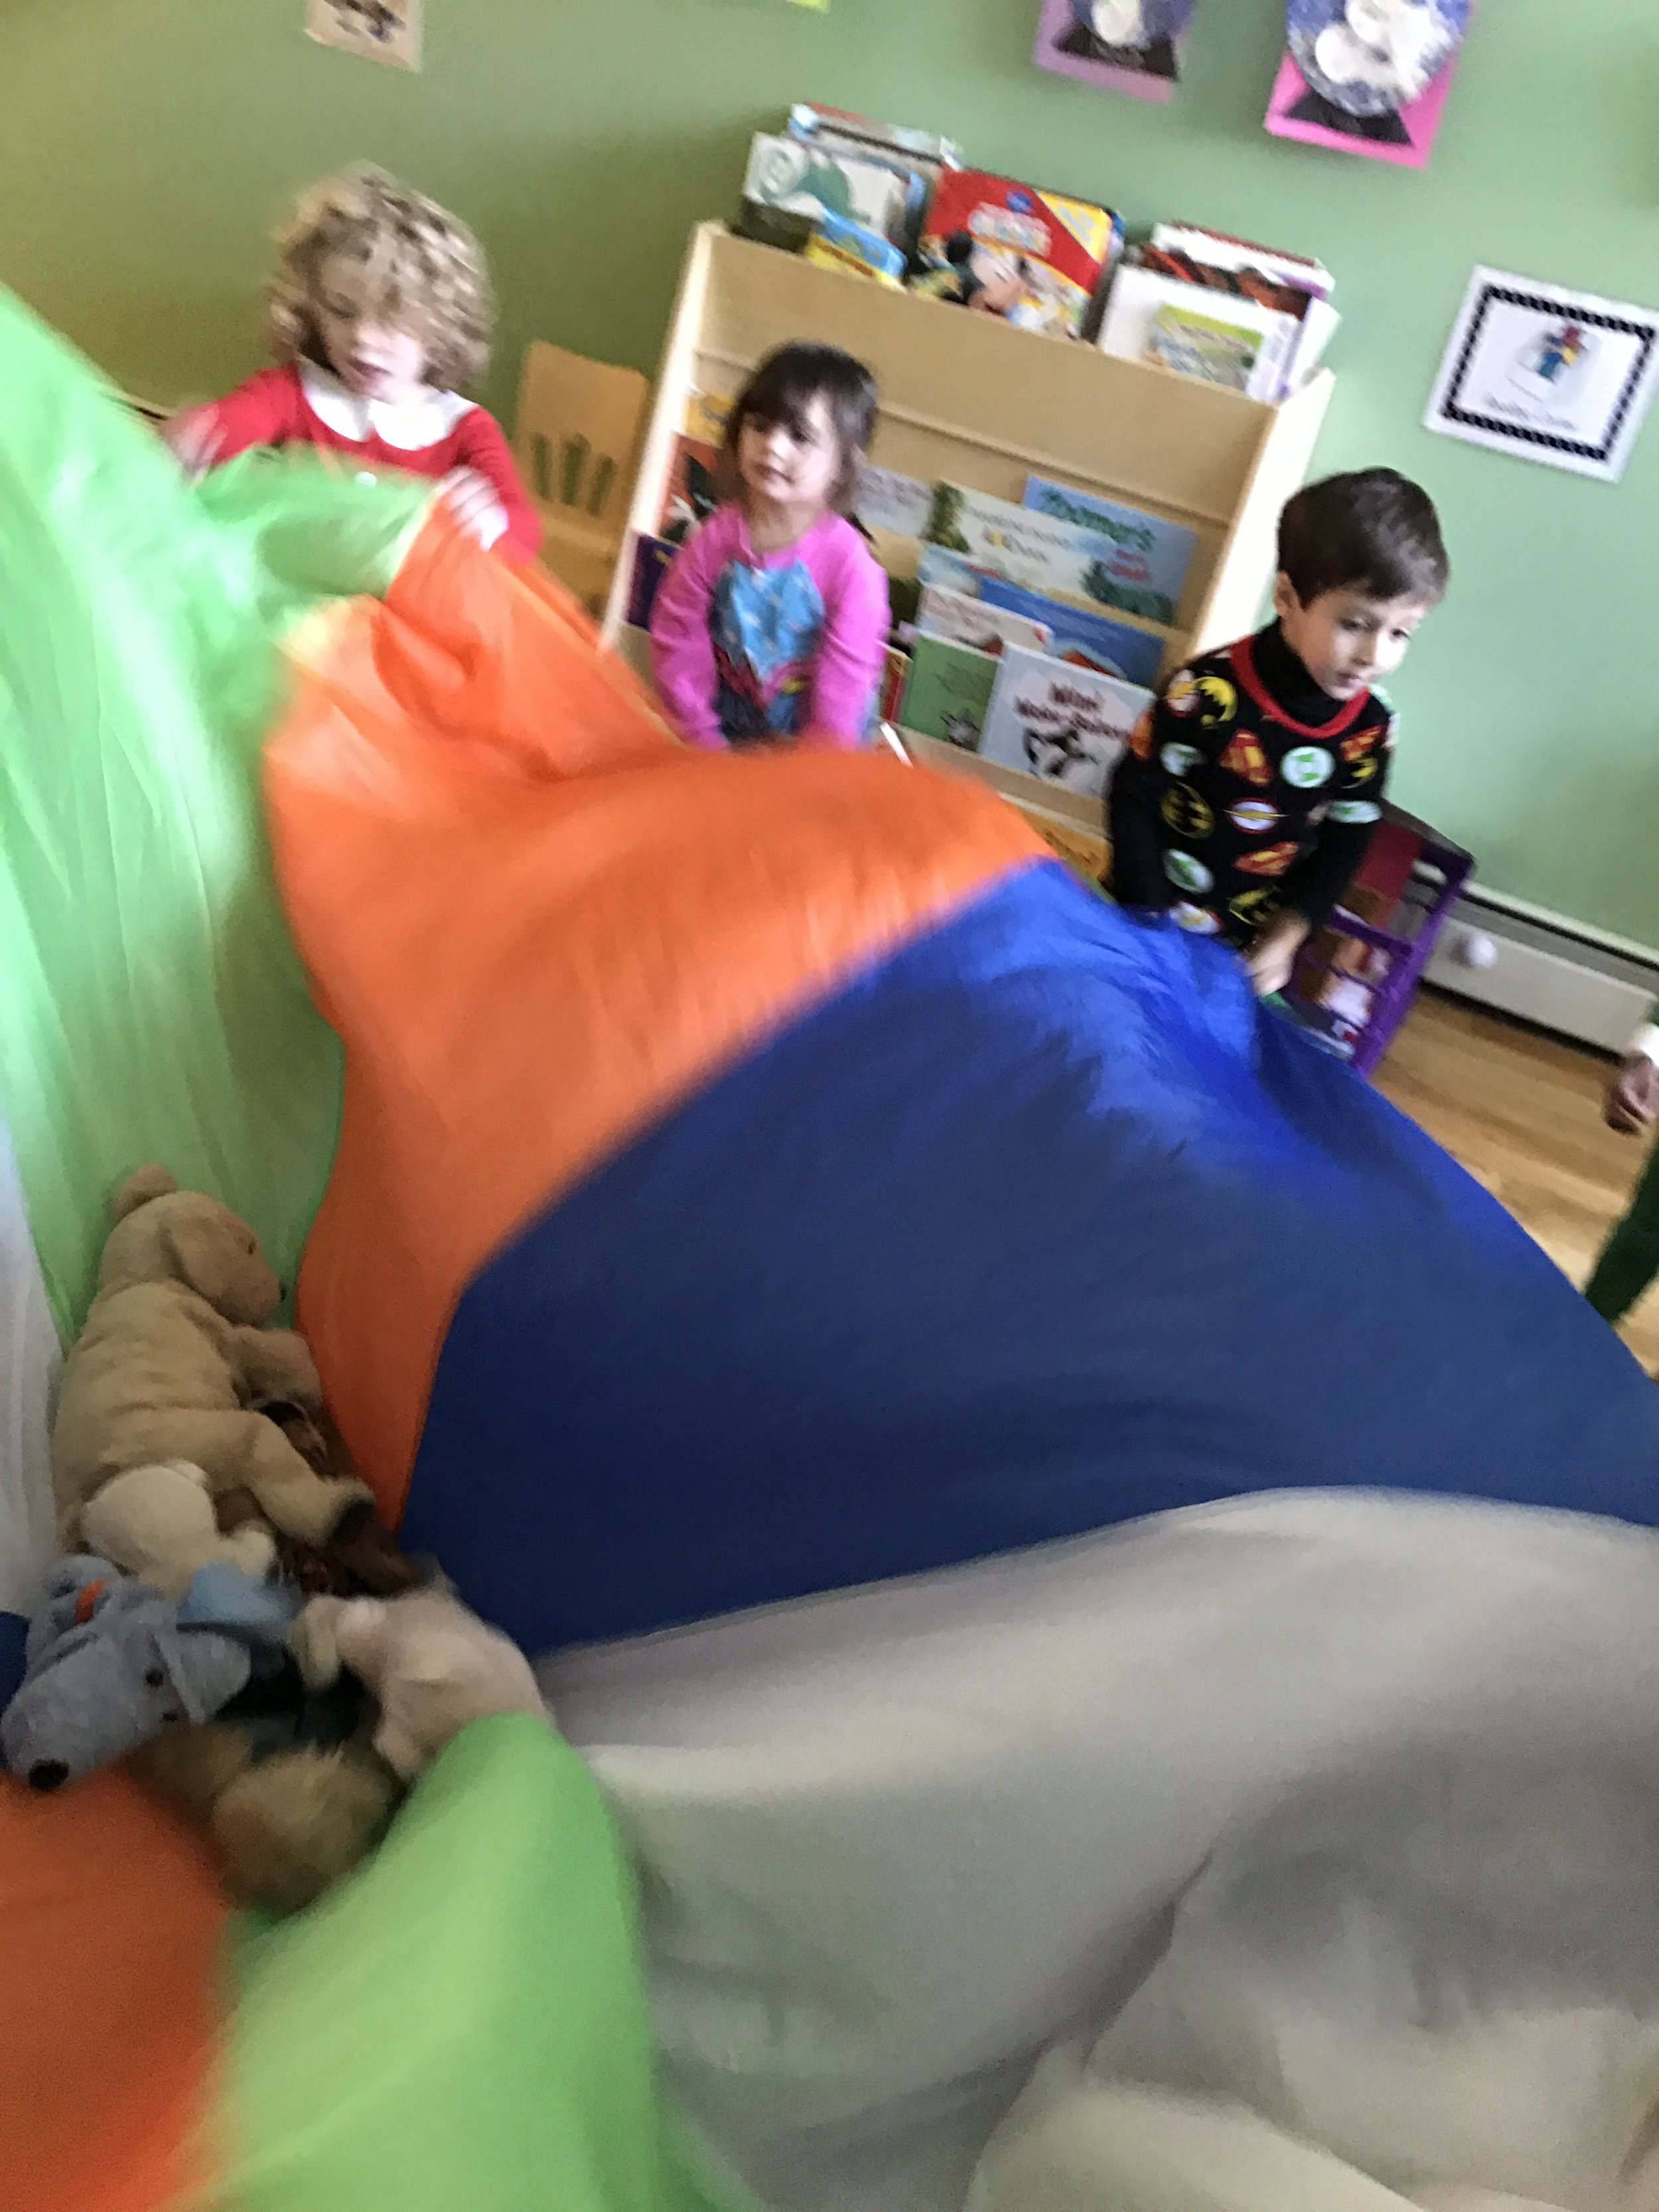 Waking up our snuggle buddies with a parachute toss!